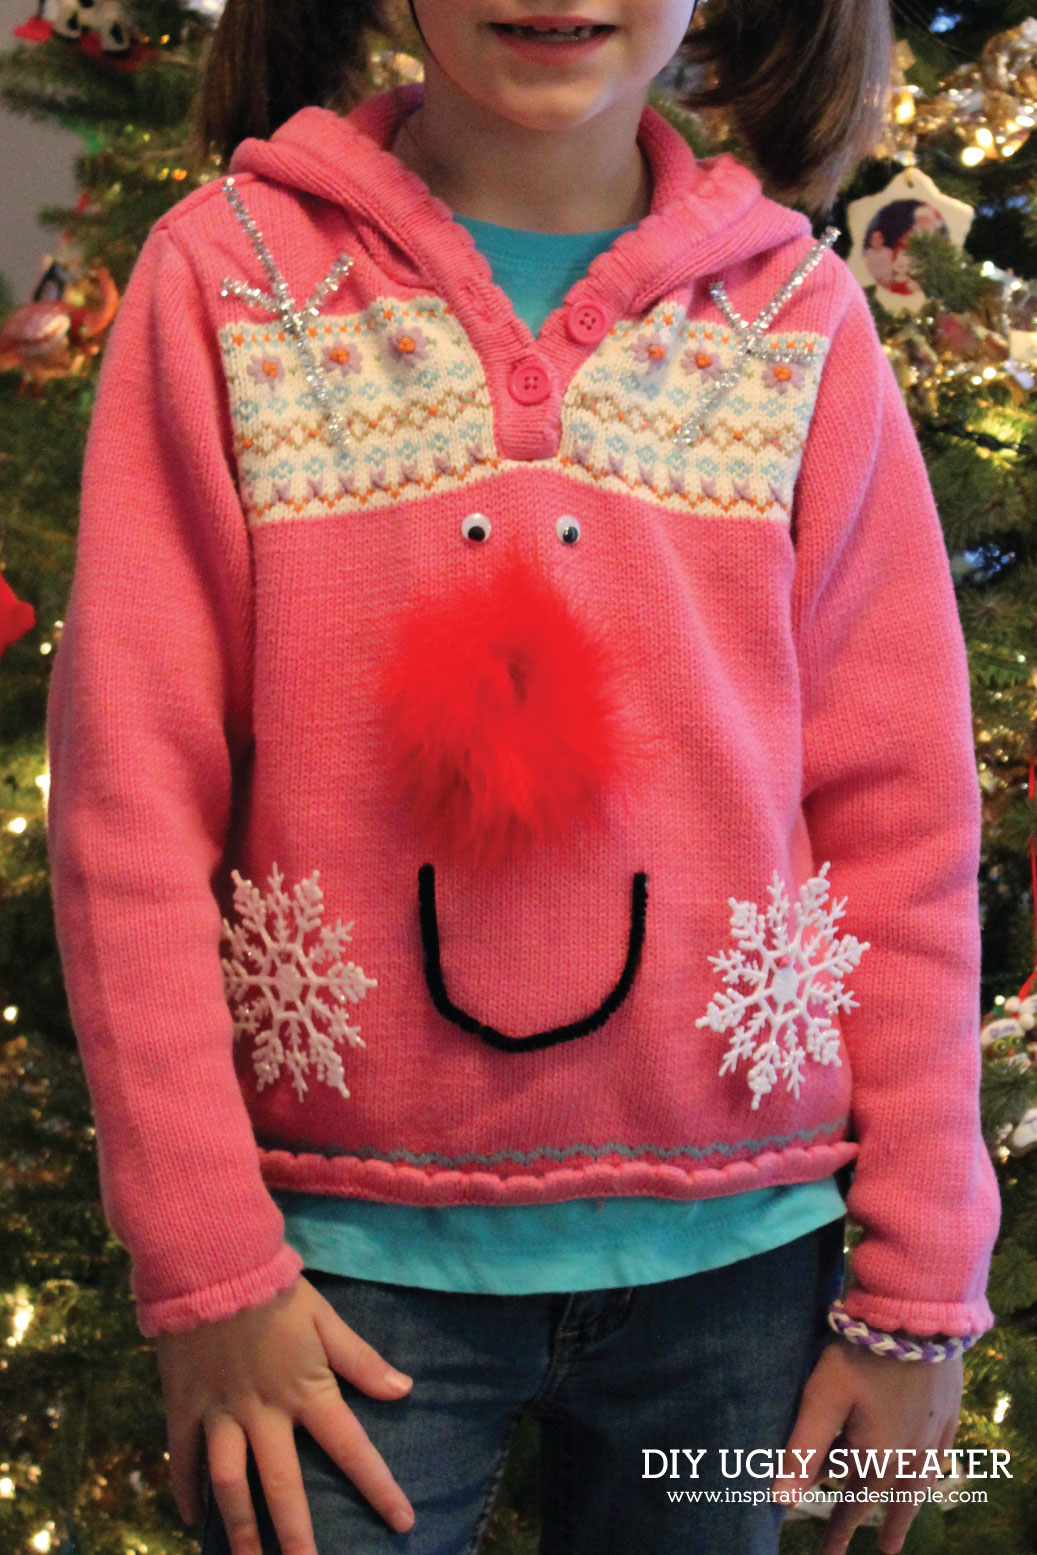 DIY Rudolph Ugly Sweater